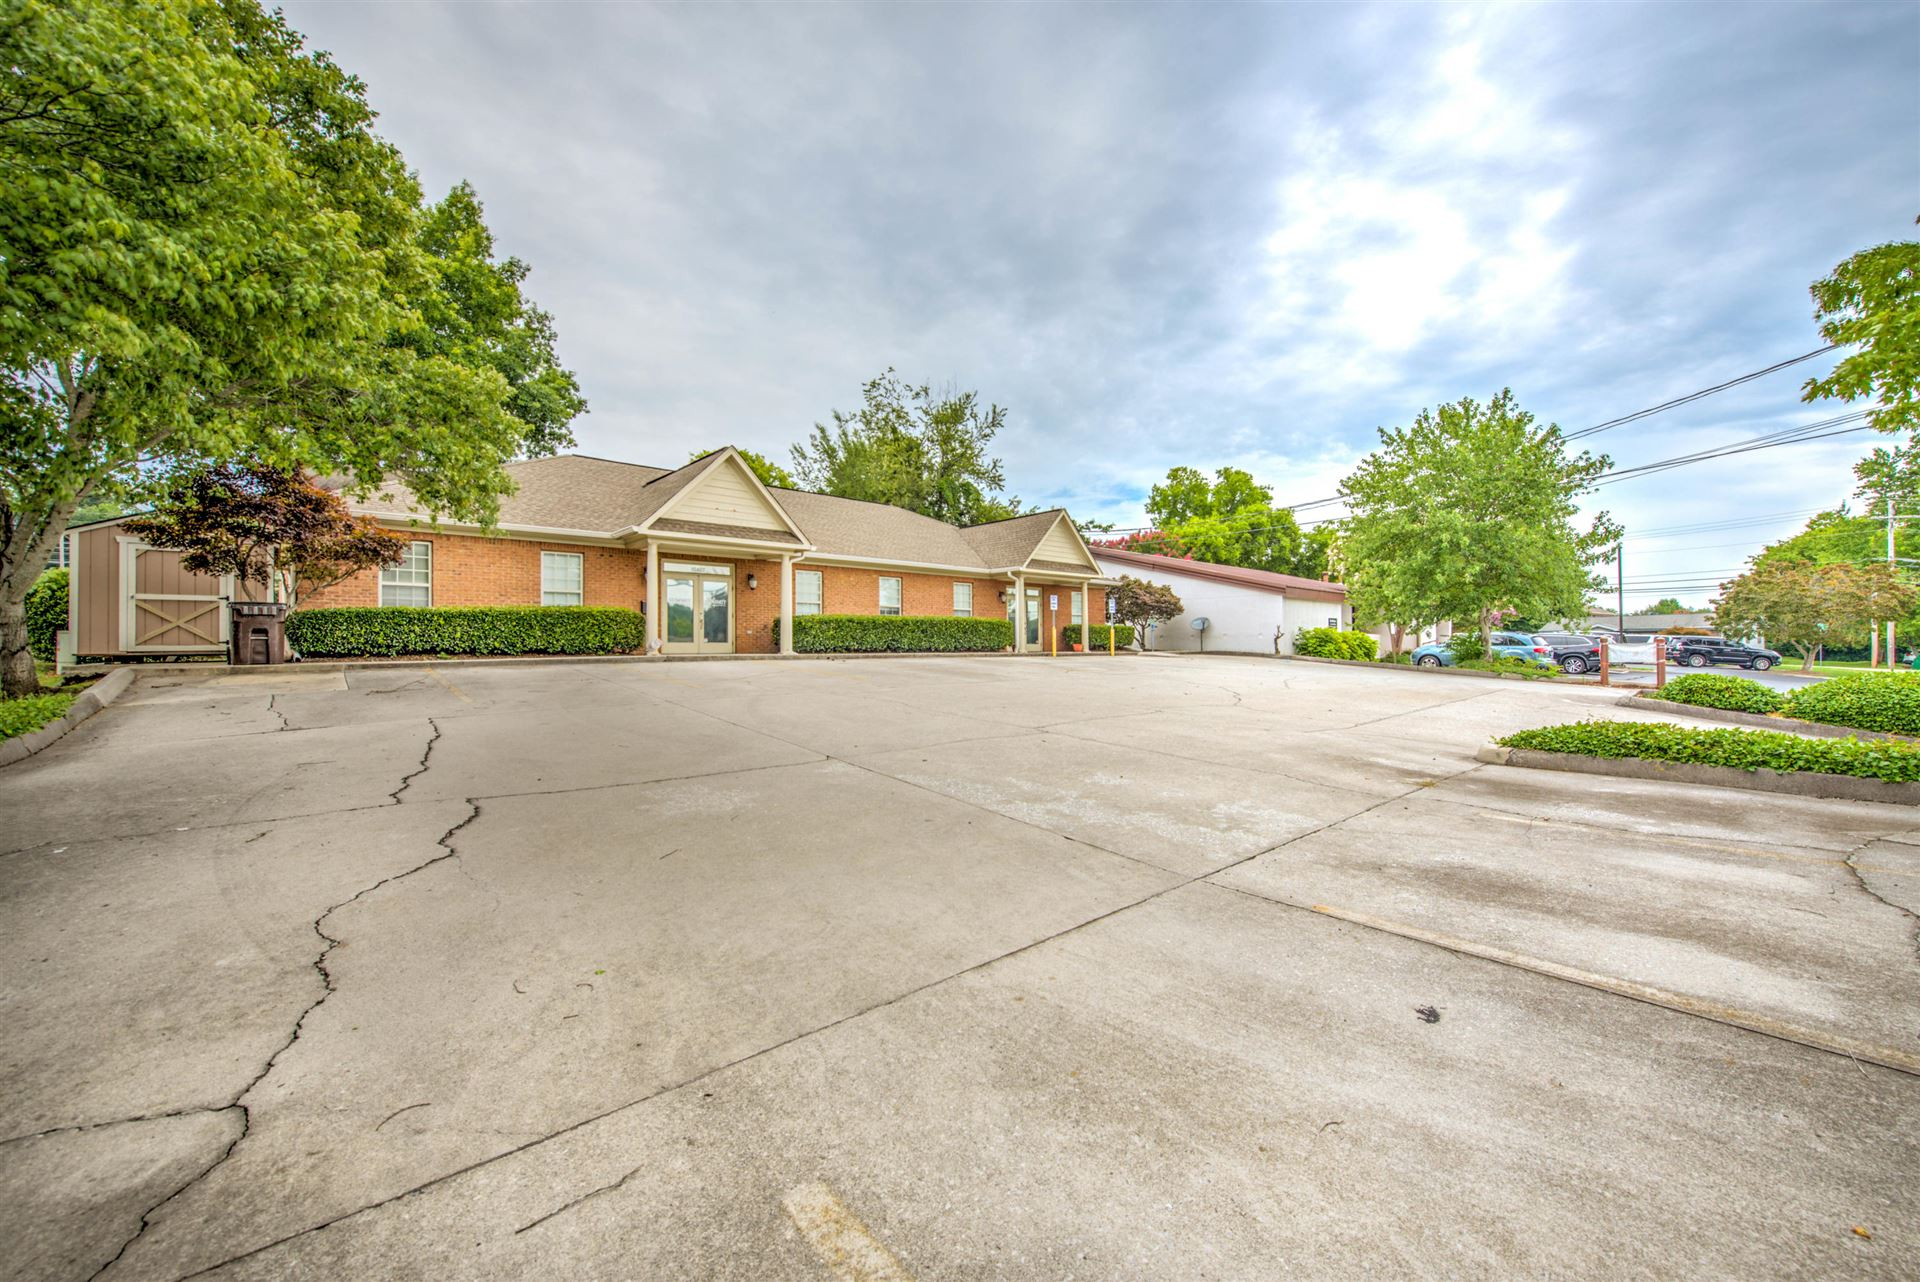 Photo of 10407 Lovell Center Drive, Knoxville, TN 37922 (MLS # 1161171)